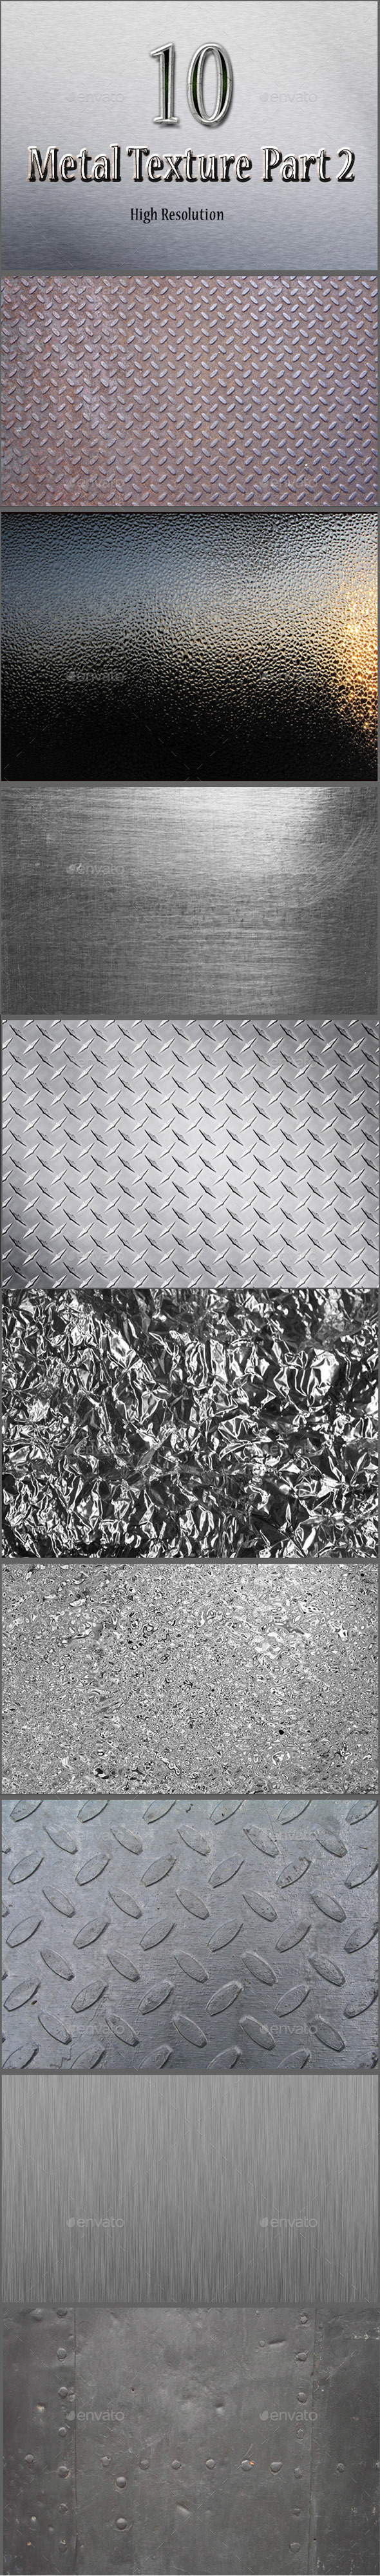 10 Hight Resolution Metal Textured Part 2 - Metal Textures